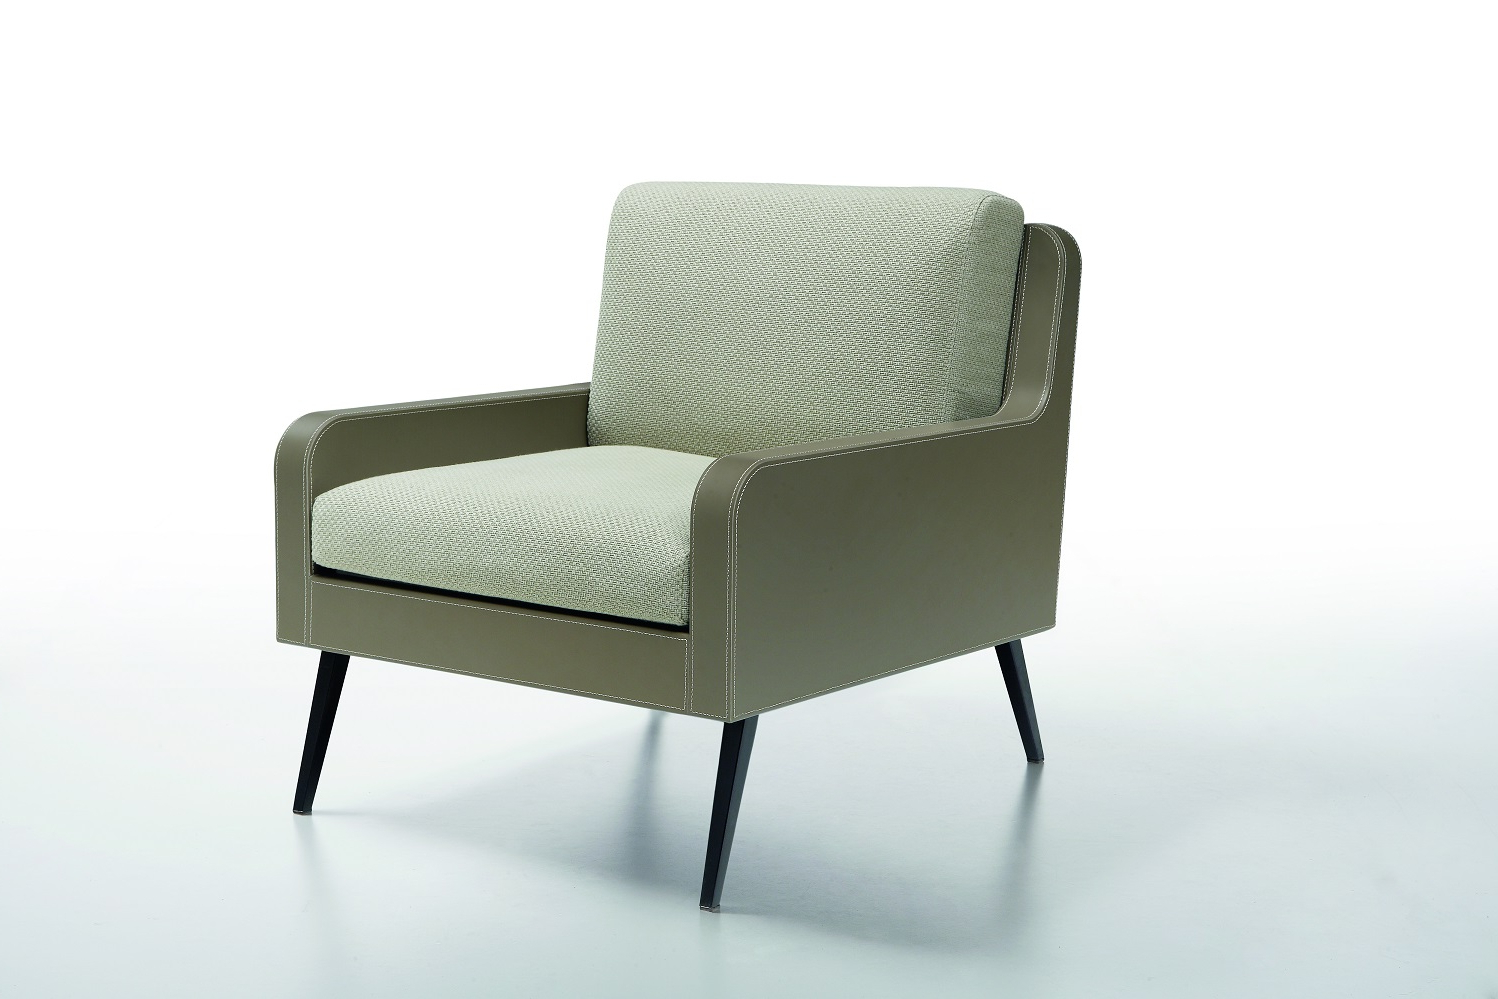 Preferred Kasha Cu Armchair – Classique Intended For Kasha Armchairs (View 8 of 20)